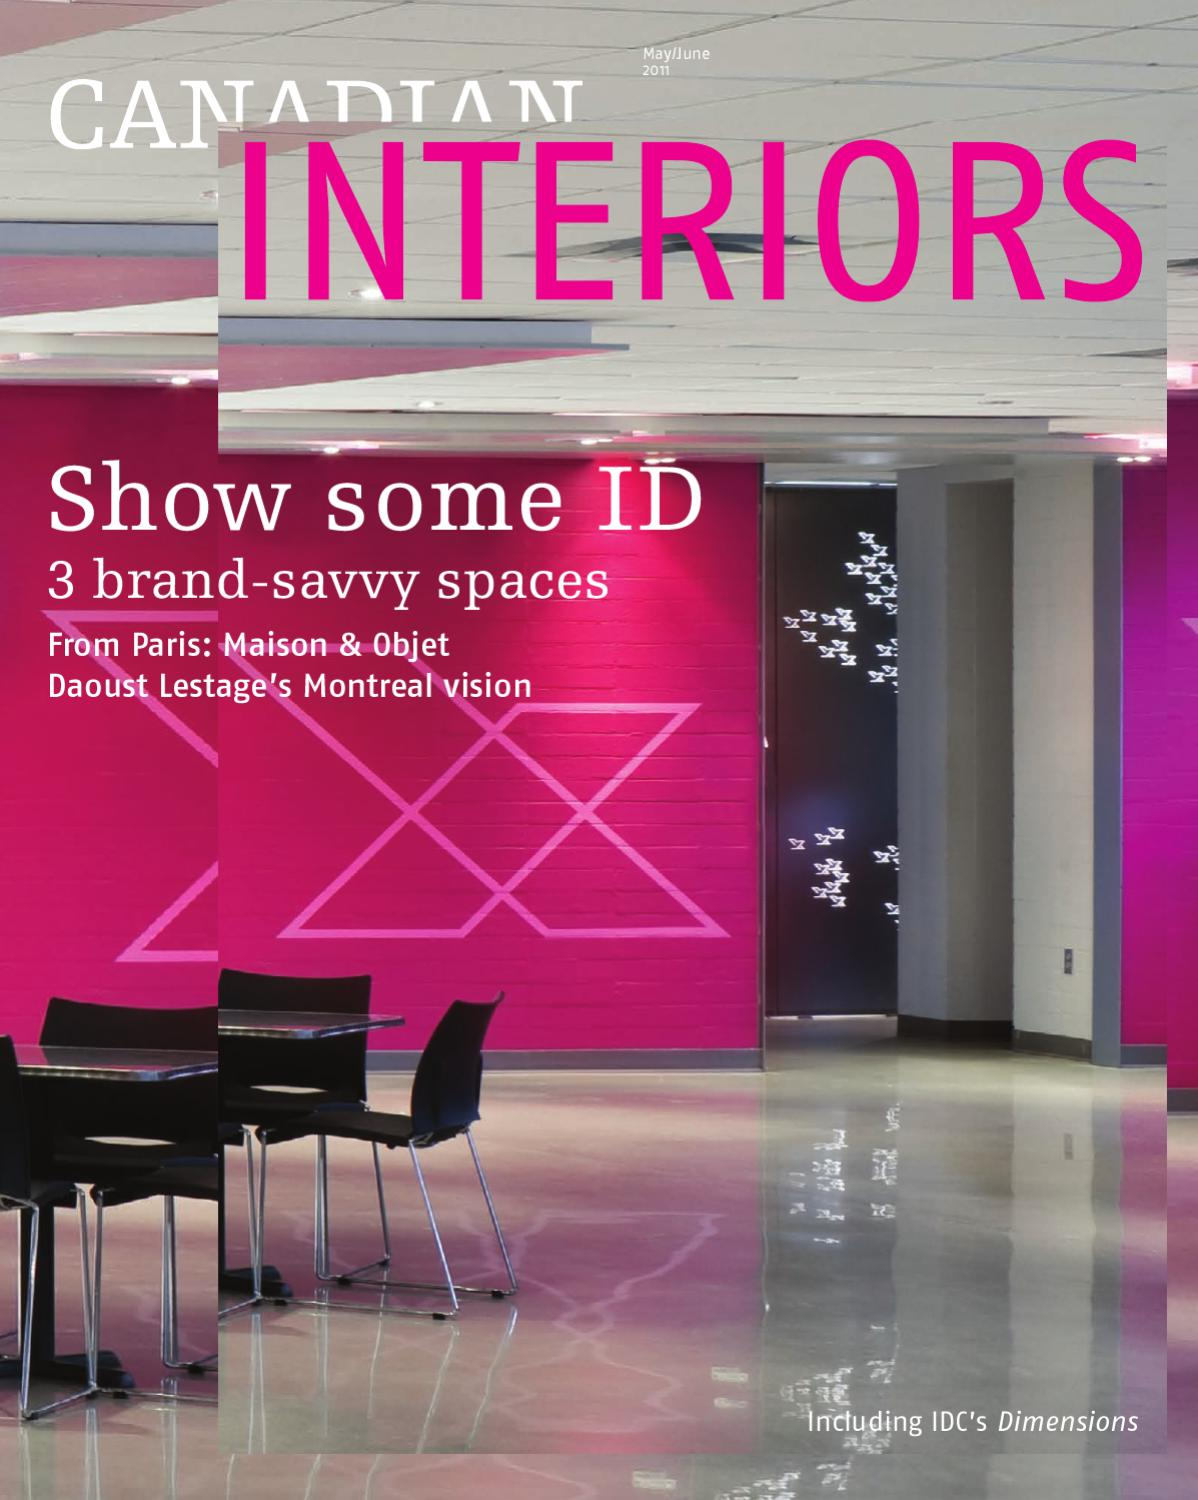 Defining Moment For Fledgling Neocon >> Canadian Interiors May June 2011 By Annex Business Media Issuu